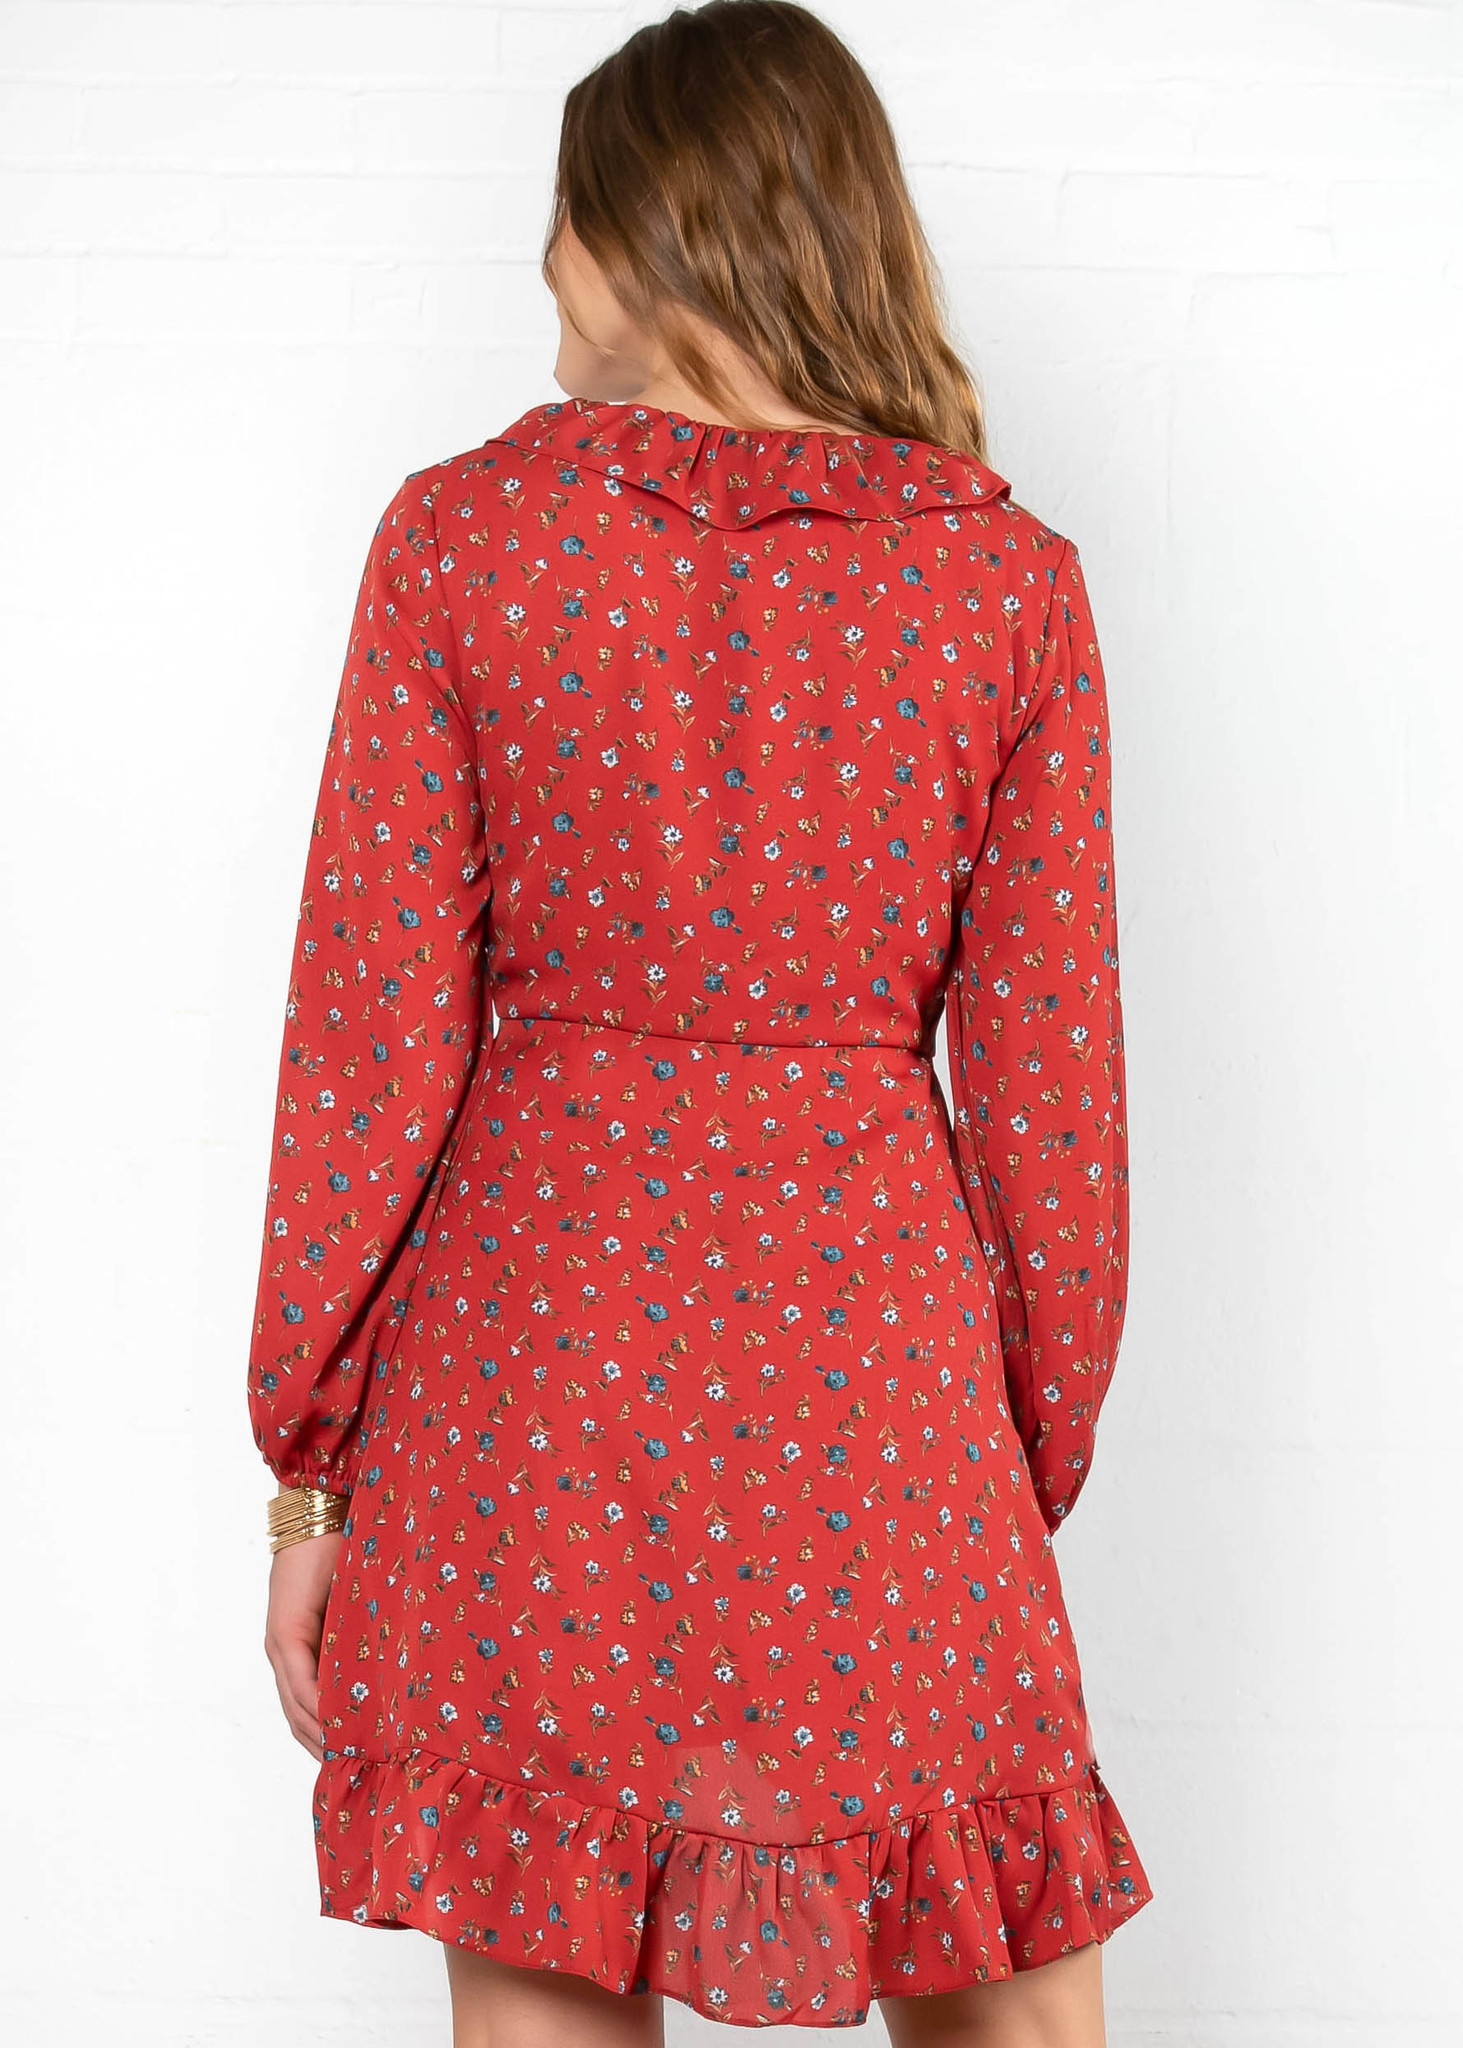 WEST VILLAGE FLORAL DRESS